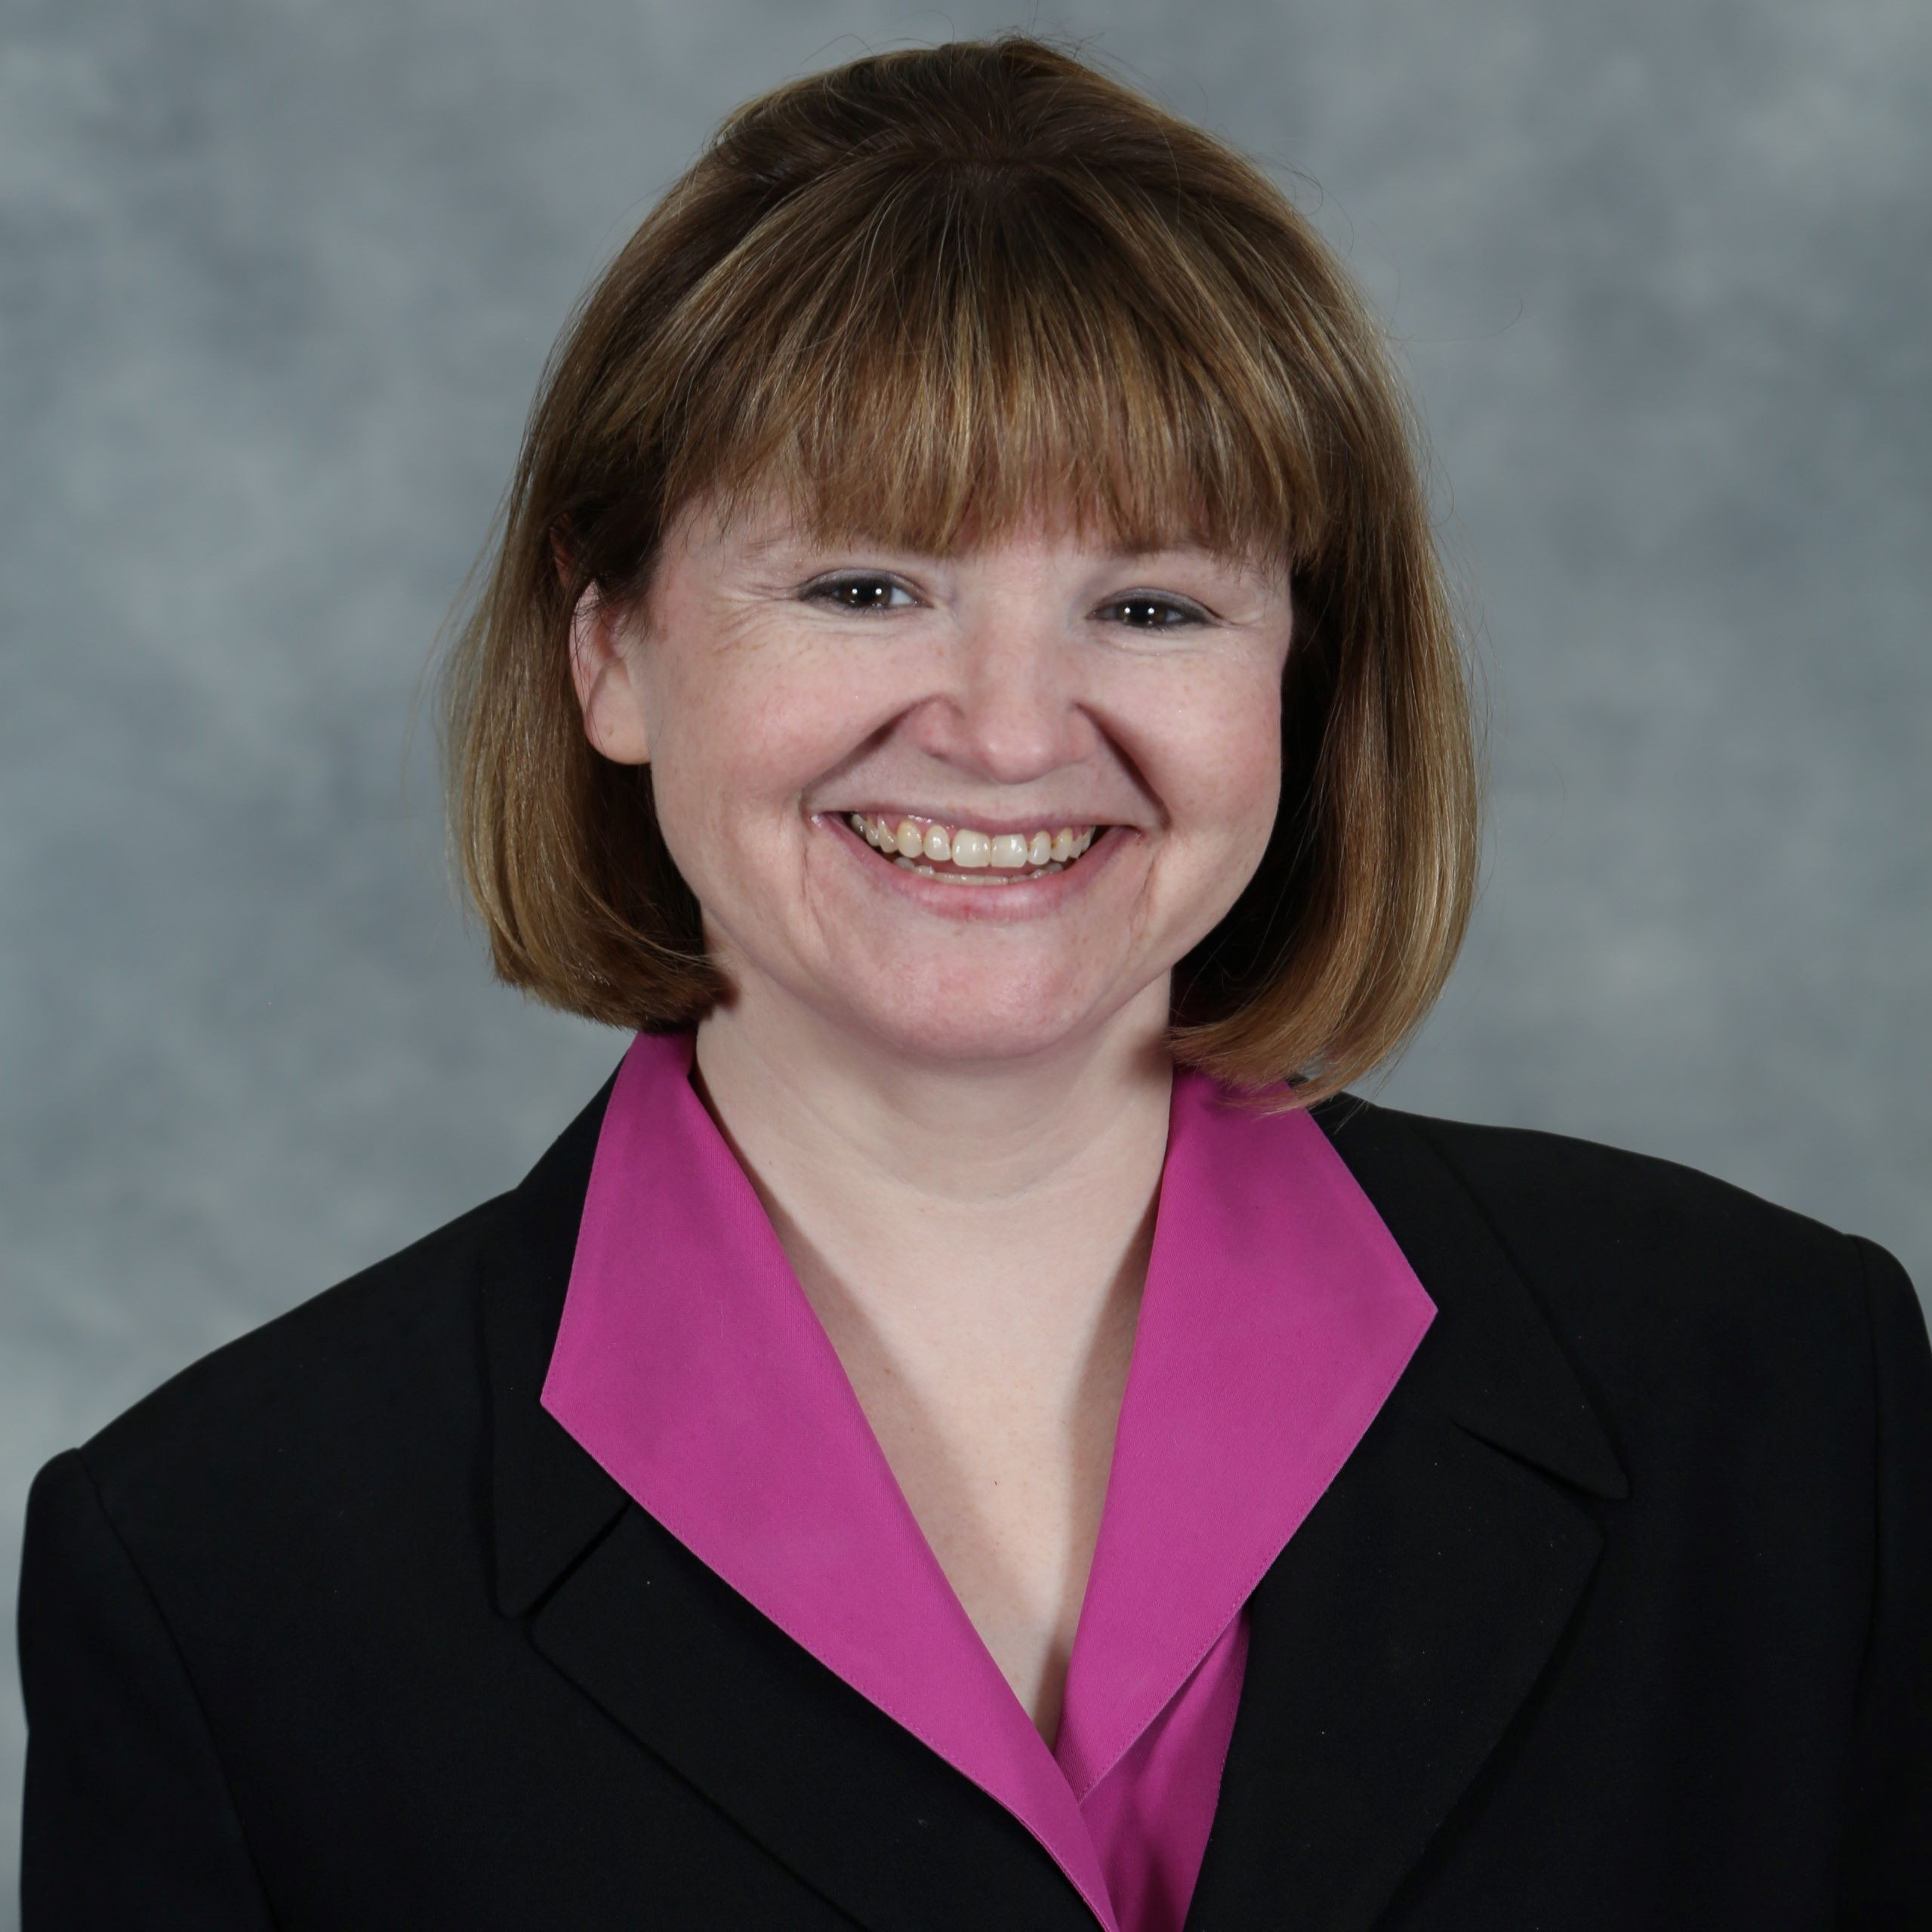 Stacey L. Borgens